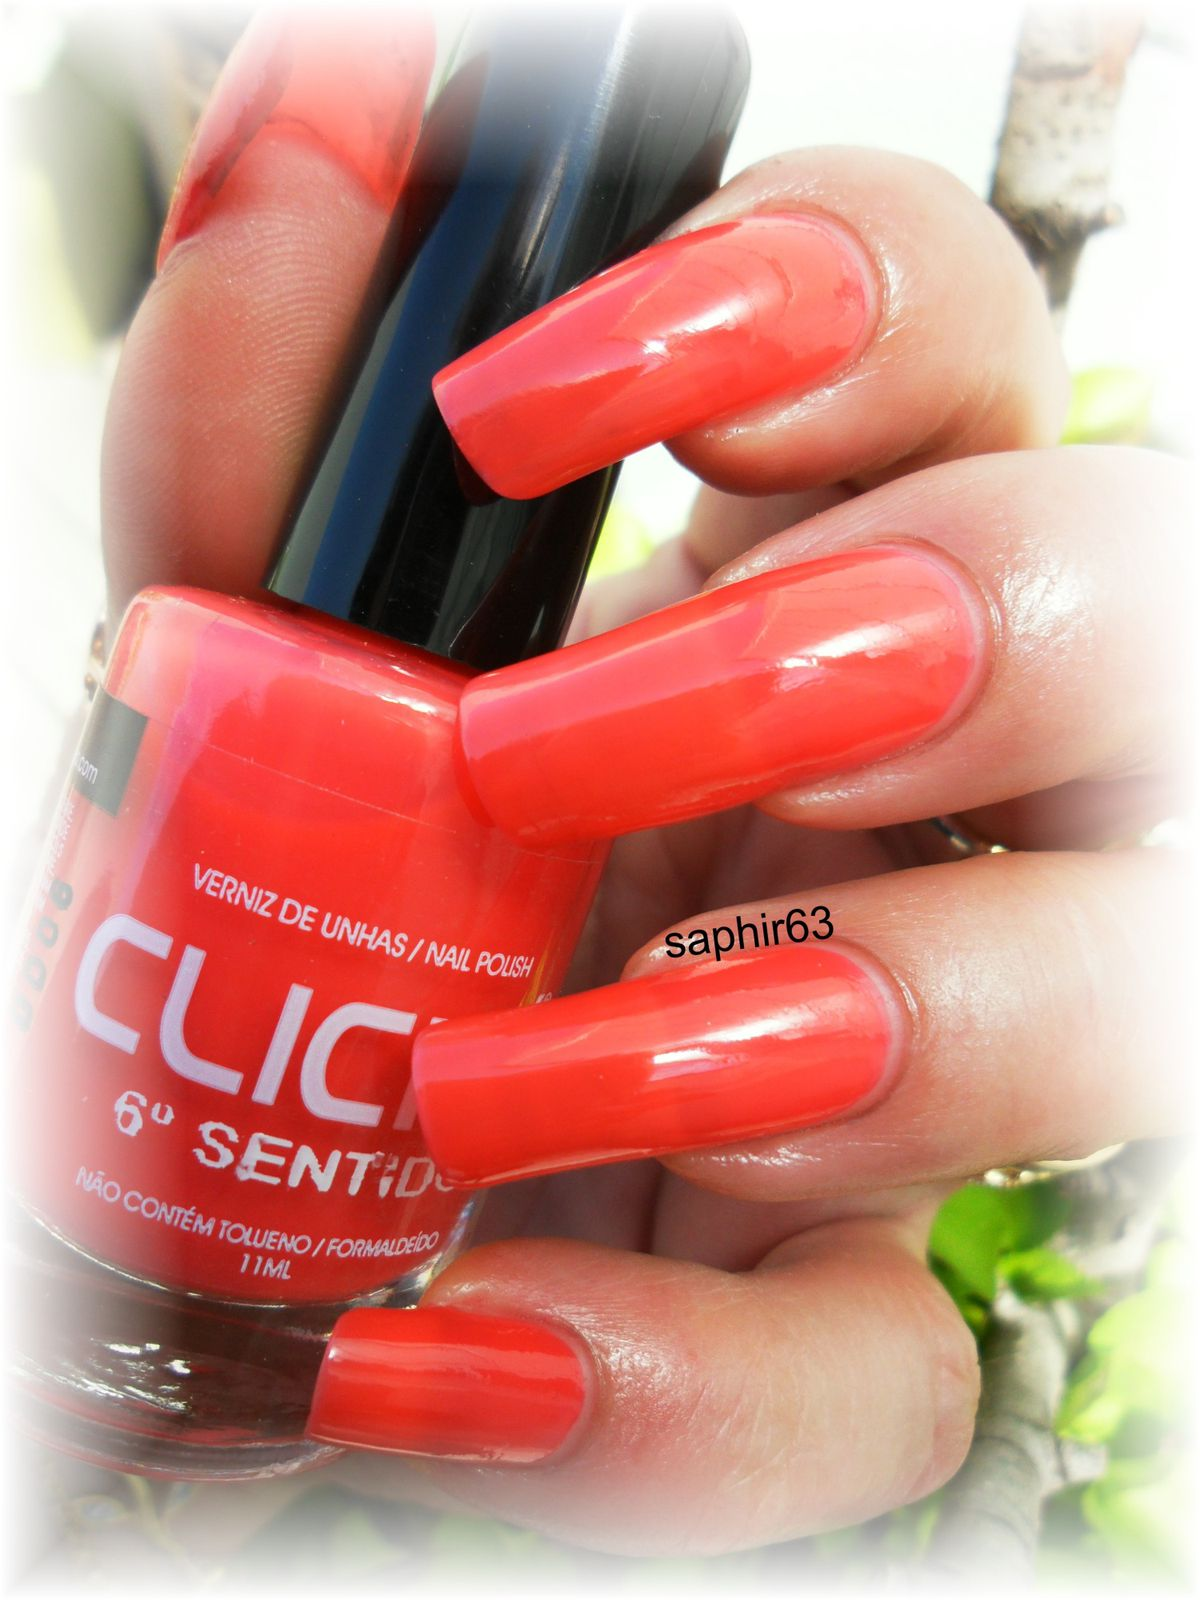 vernis cliché 6° sentido et lurudana teka - beauty by angel